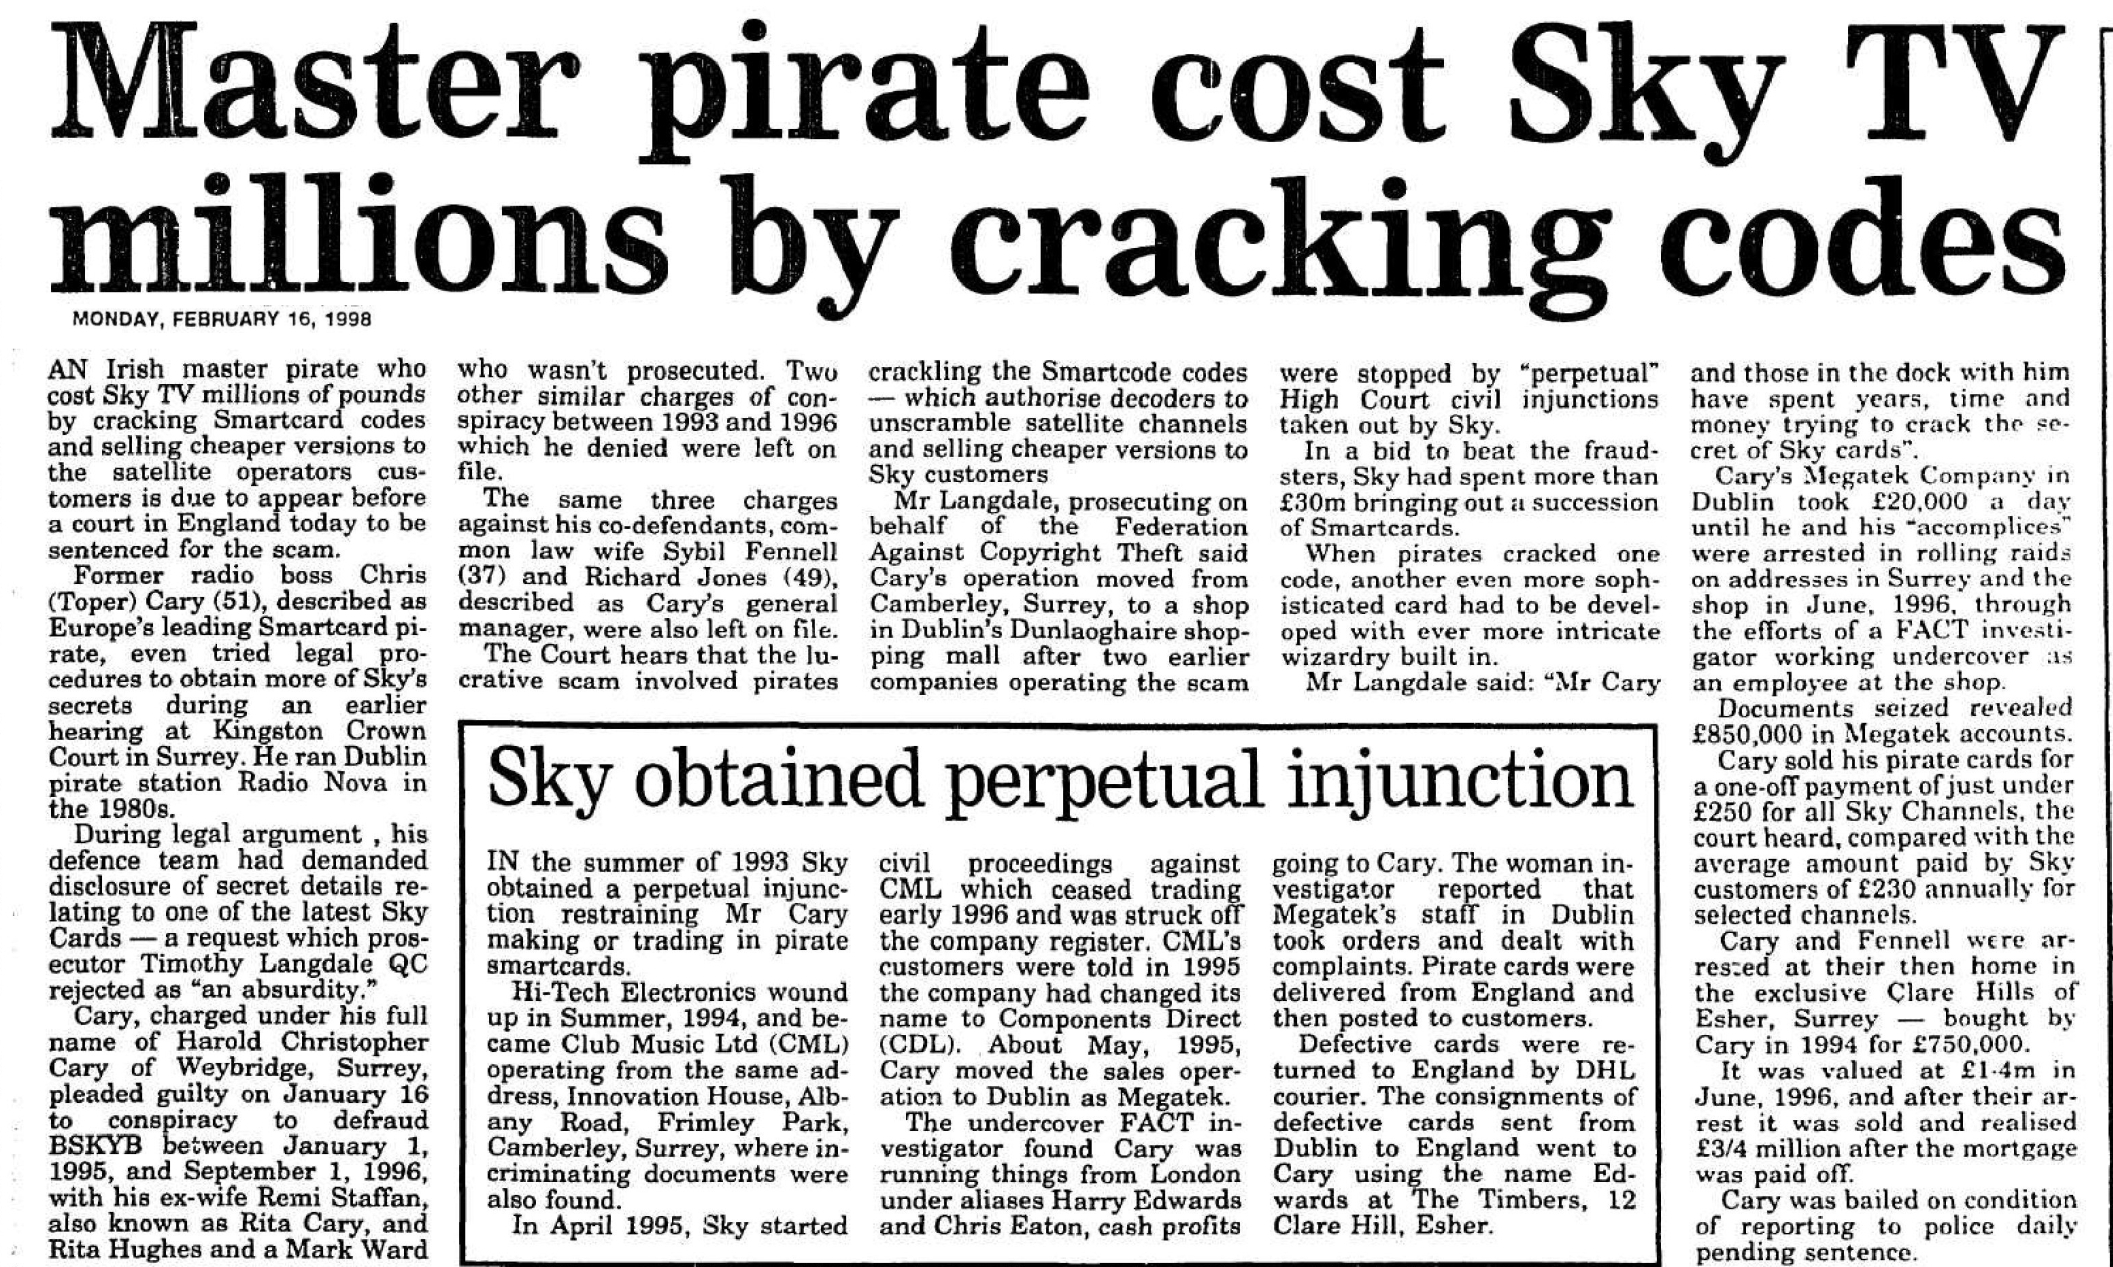 Master pirate cost Sky TV millions by cracking codes was a headline from The Irish News dated February 16th 1998